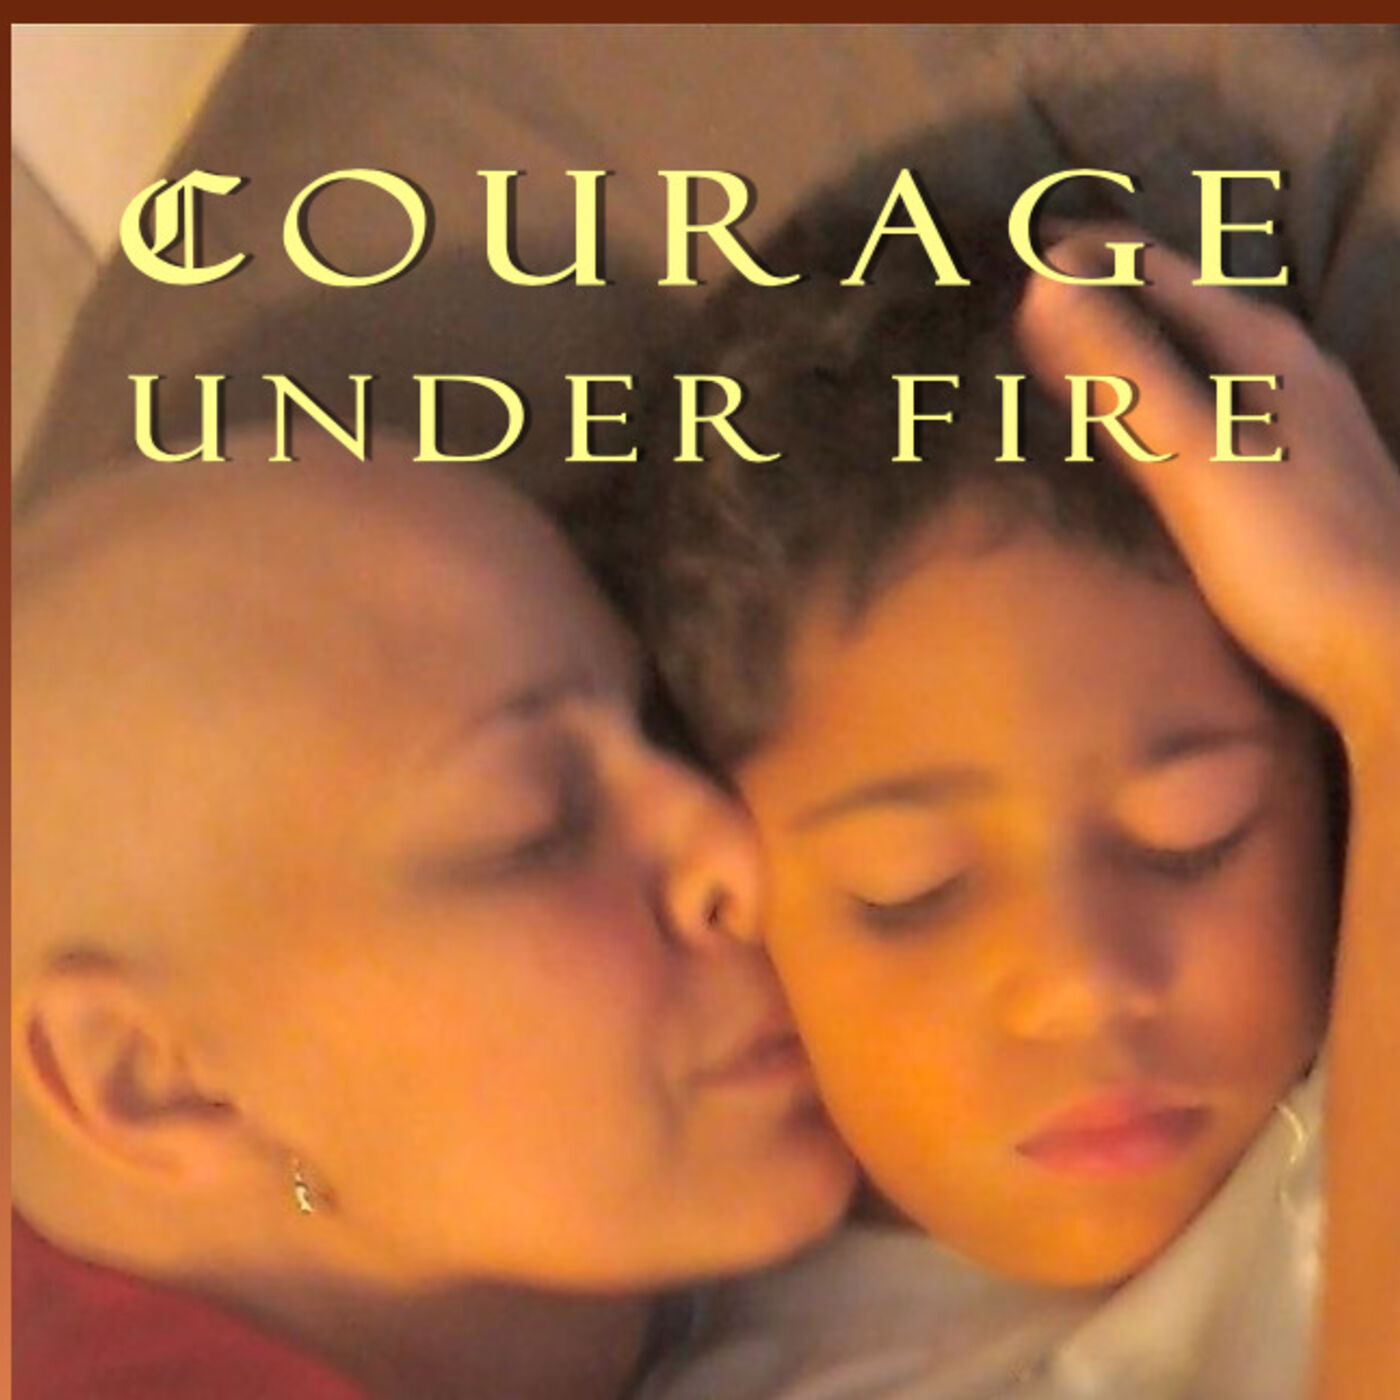 Ep. 10: Courage Under Fire: Overcoming Worry and Fear